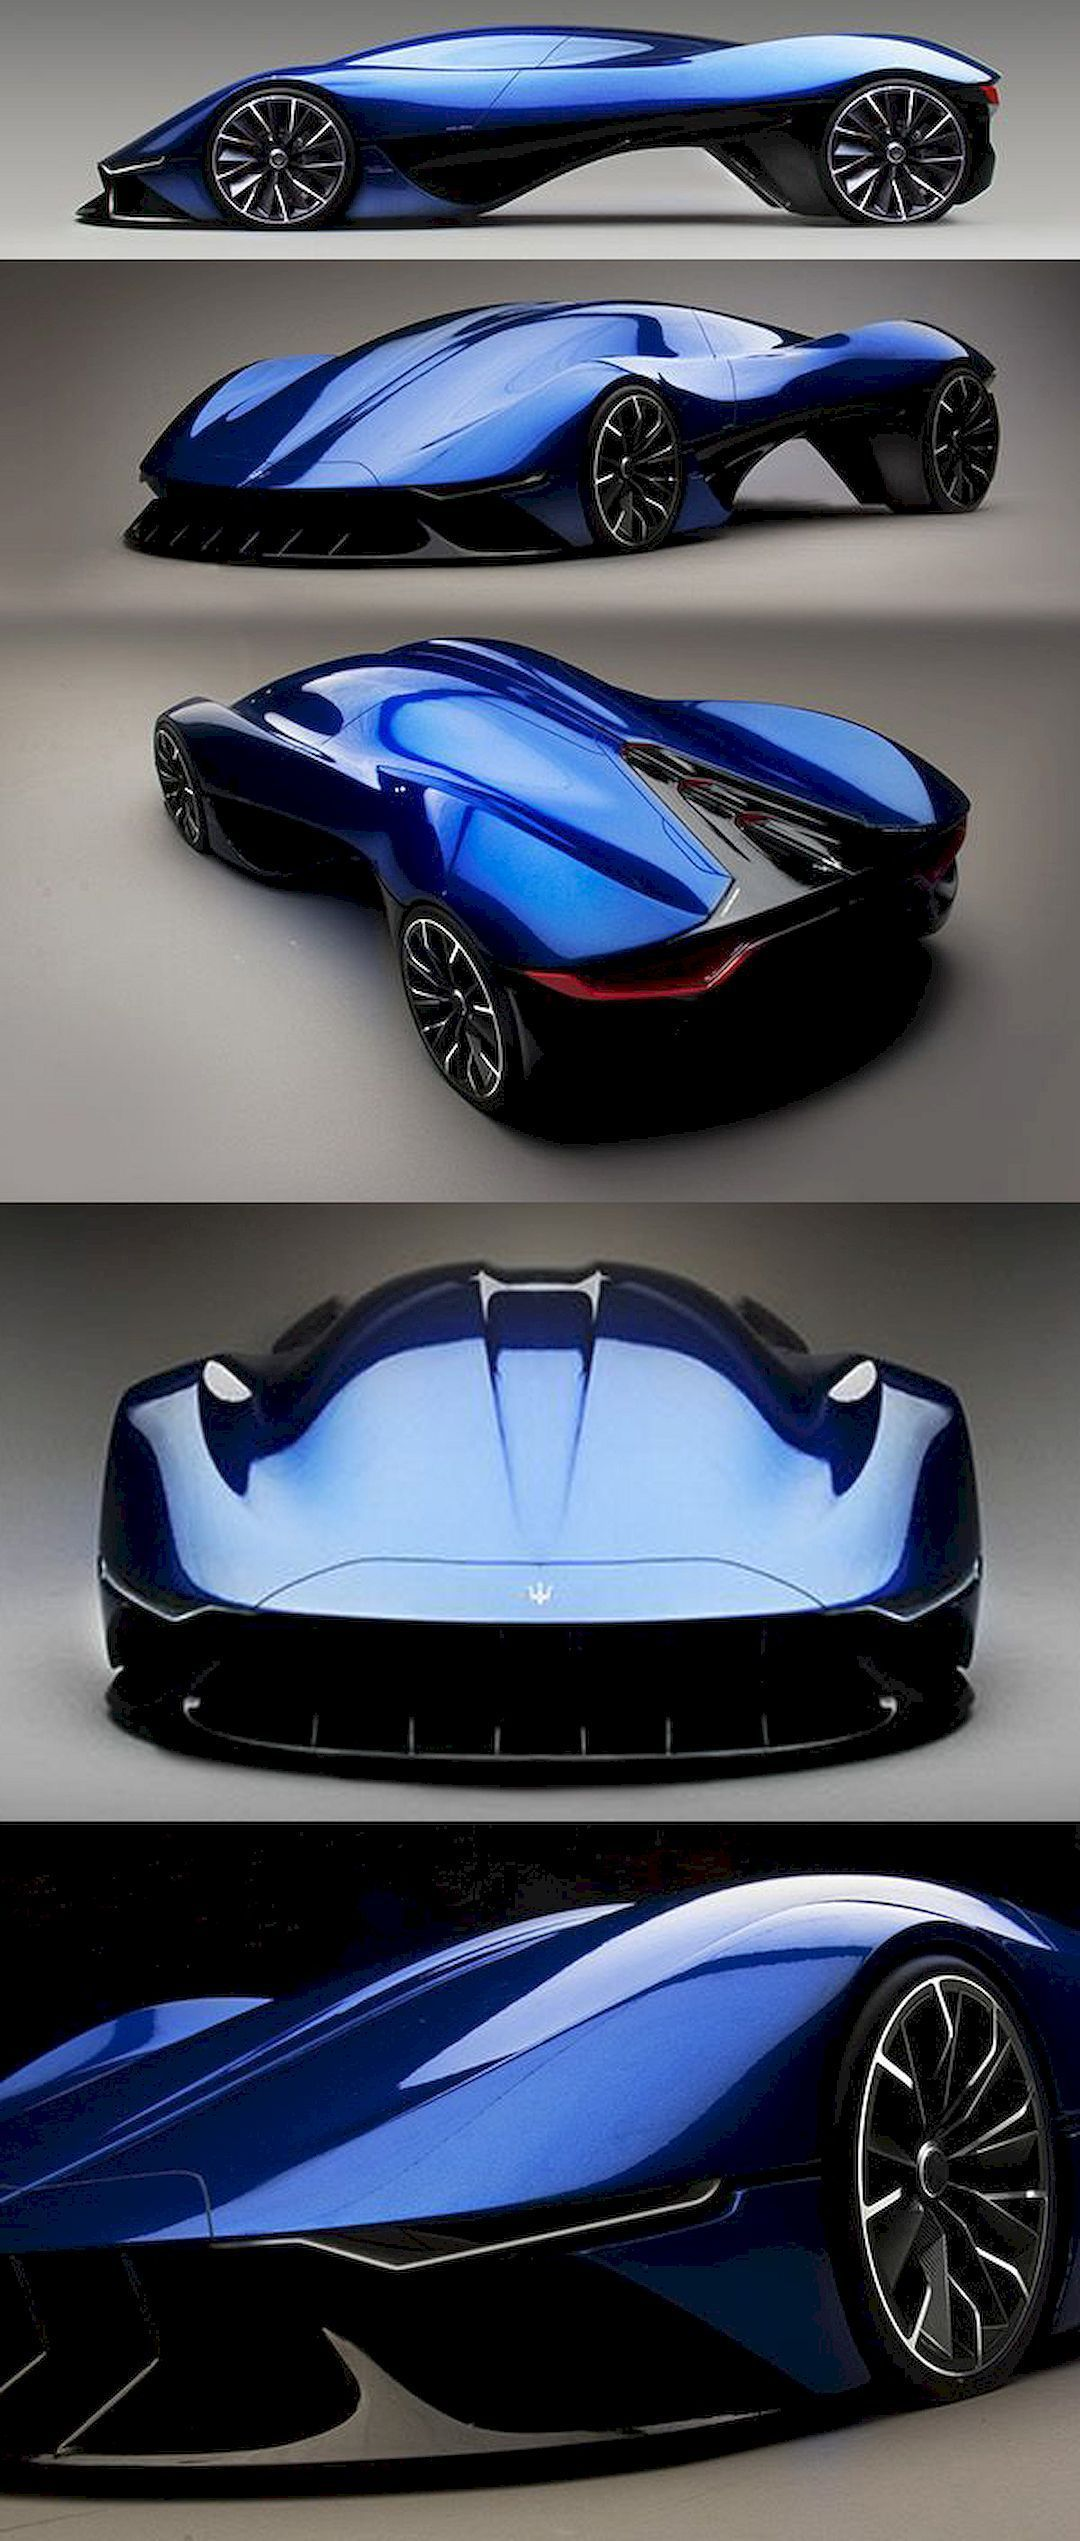 It Doesn T Get Better Than This My Ultimate Supercar Ride Dreamcars Supercar Luxury Car Coolcars Exoticcars Futuristic Cars Design Sports Cars Luxury